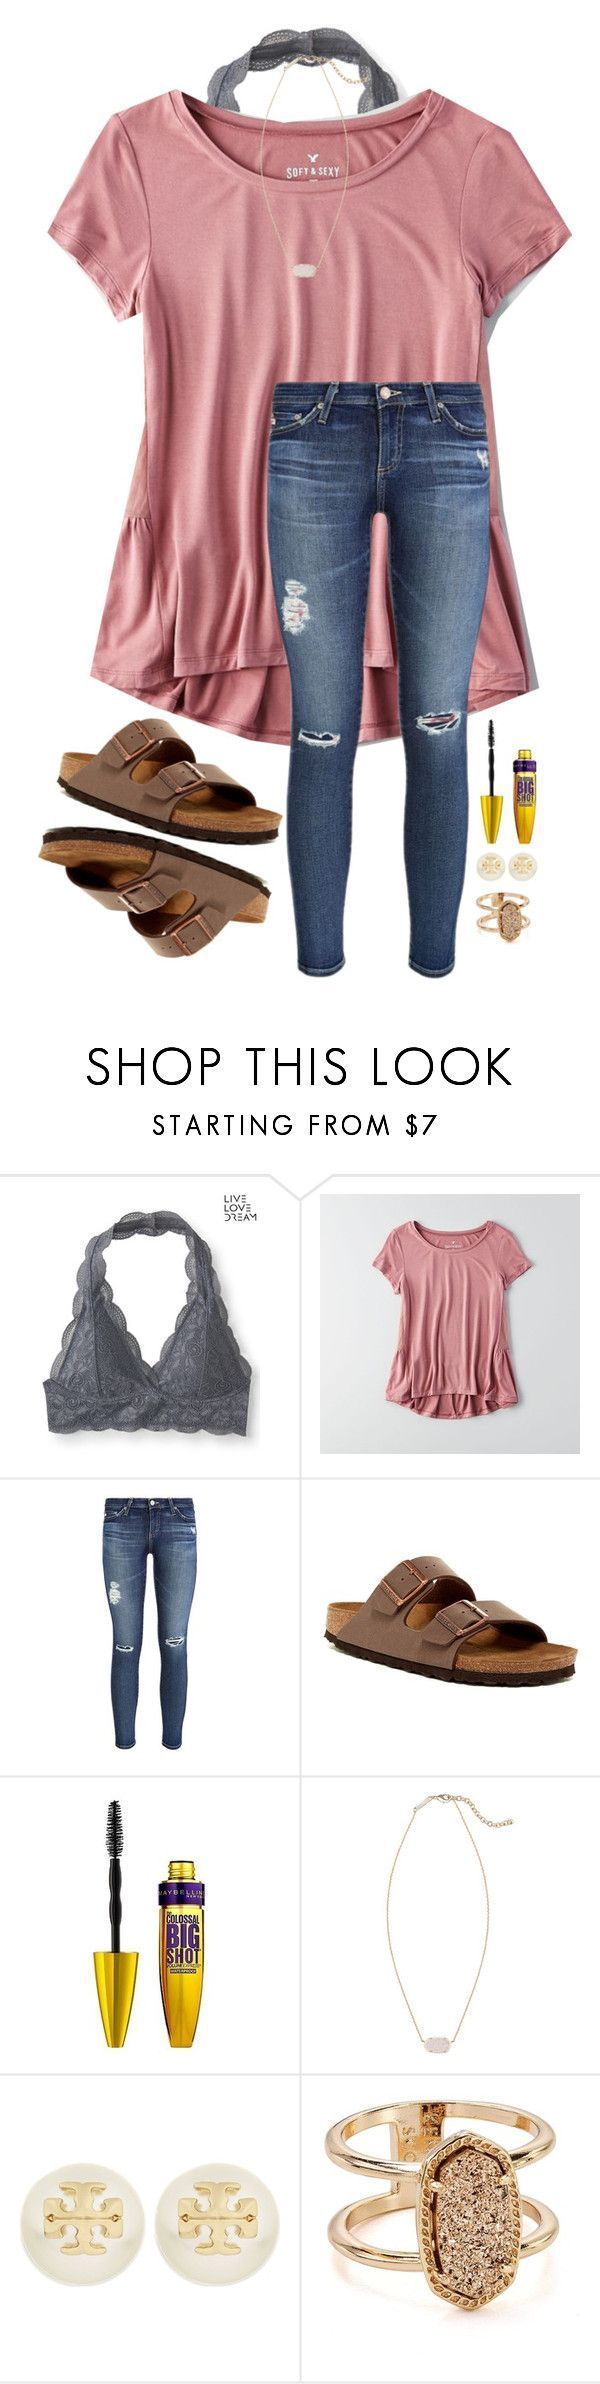 By Southernsophia  E2 9d A4 Liked On Polyvore Featuring Aaropostale American Eagle Outfitters Ag Adriano Goldschmied Birkenstock Maybelline Kendra Scott And